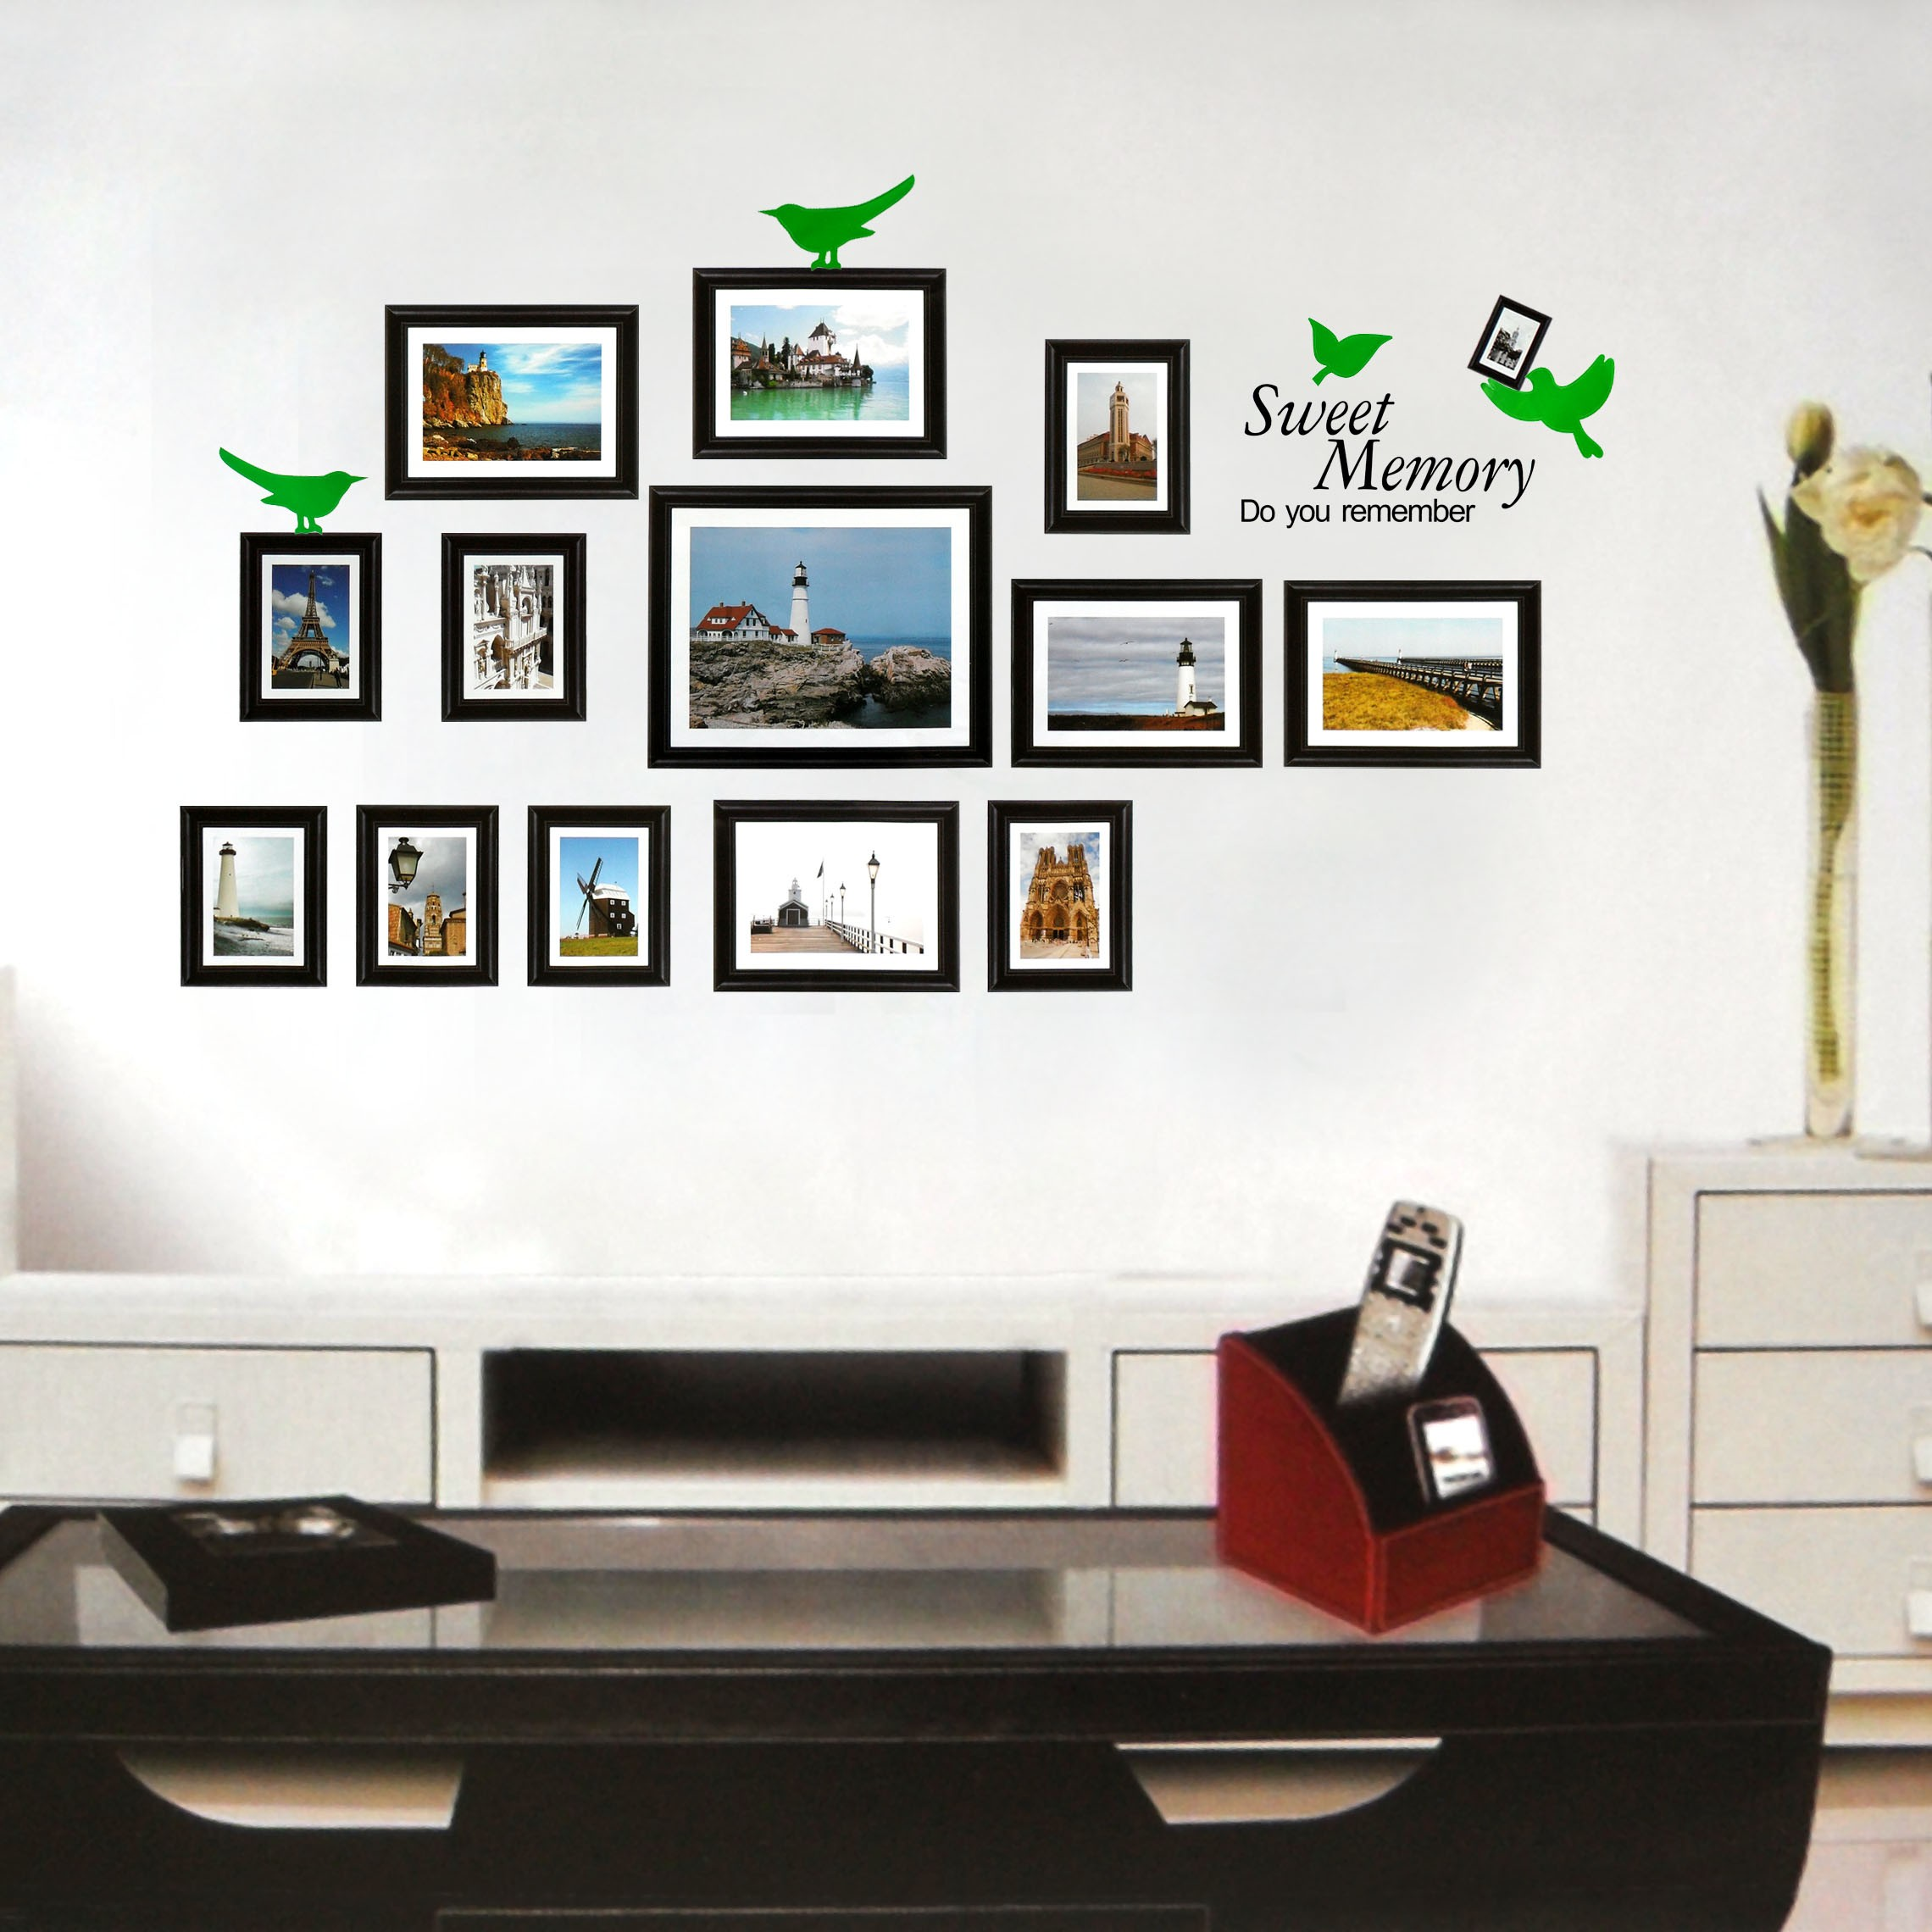 Wall Sticker Family Tree